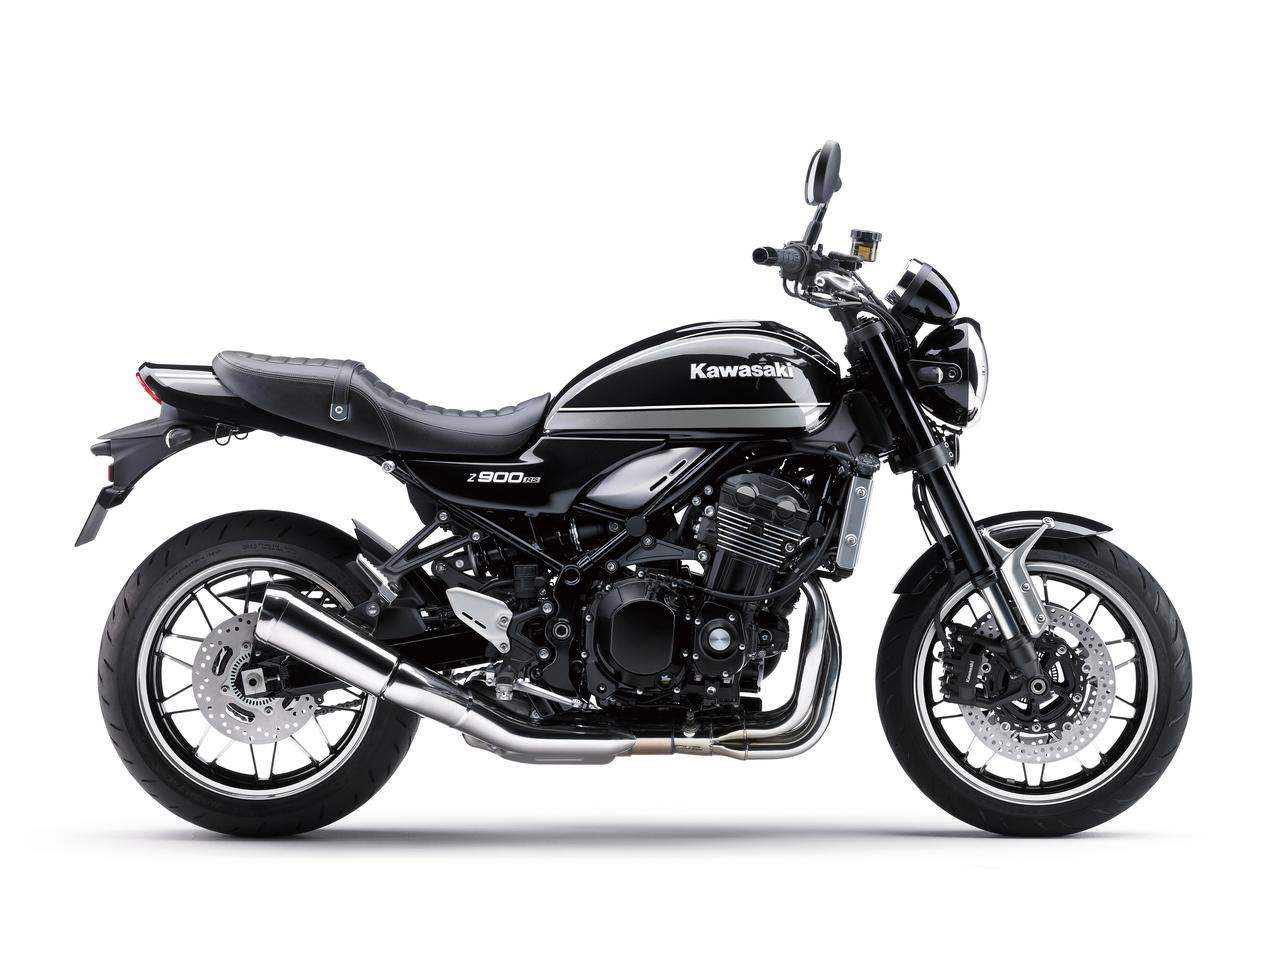 Images : 3番目の画像 - カワサキ「Z900RS」「Z900RS CAFE」2021年モデル - webオートバイ